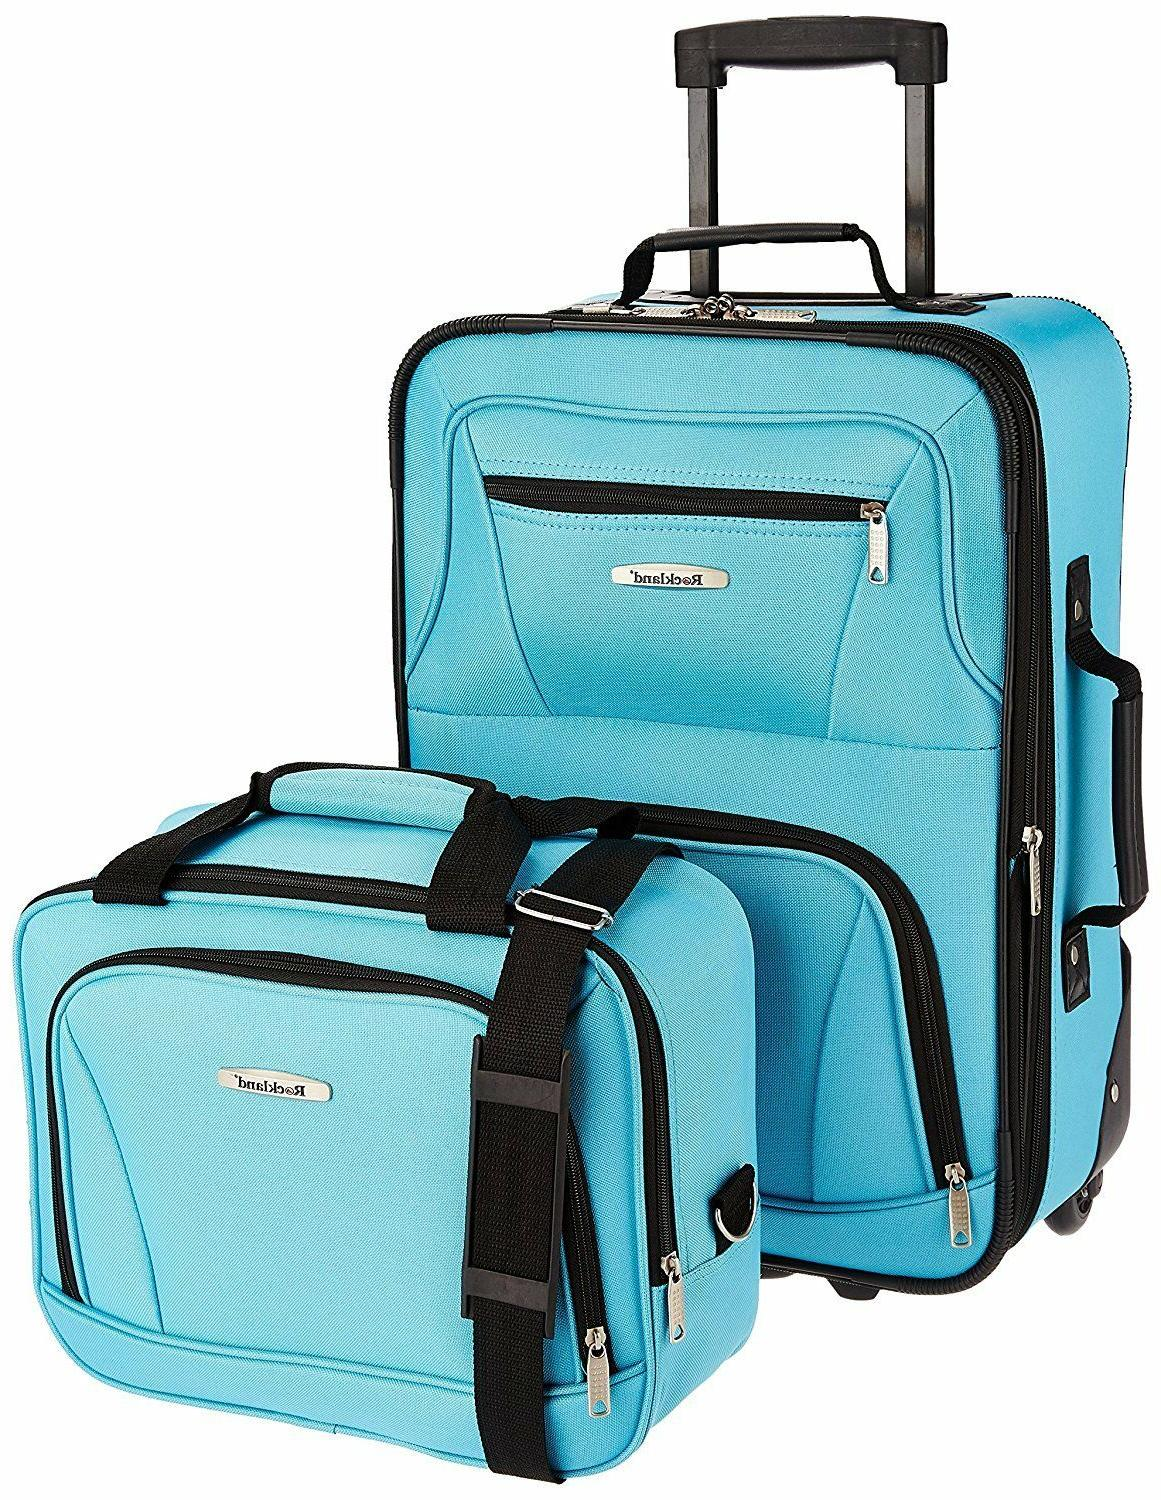 Rockland Set, One Size,Zipper,Travel,Clothes,Security,Shoes,Bags